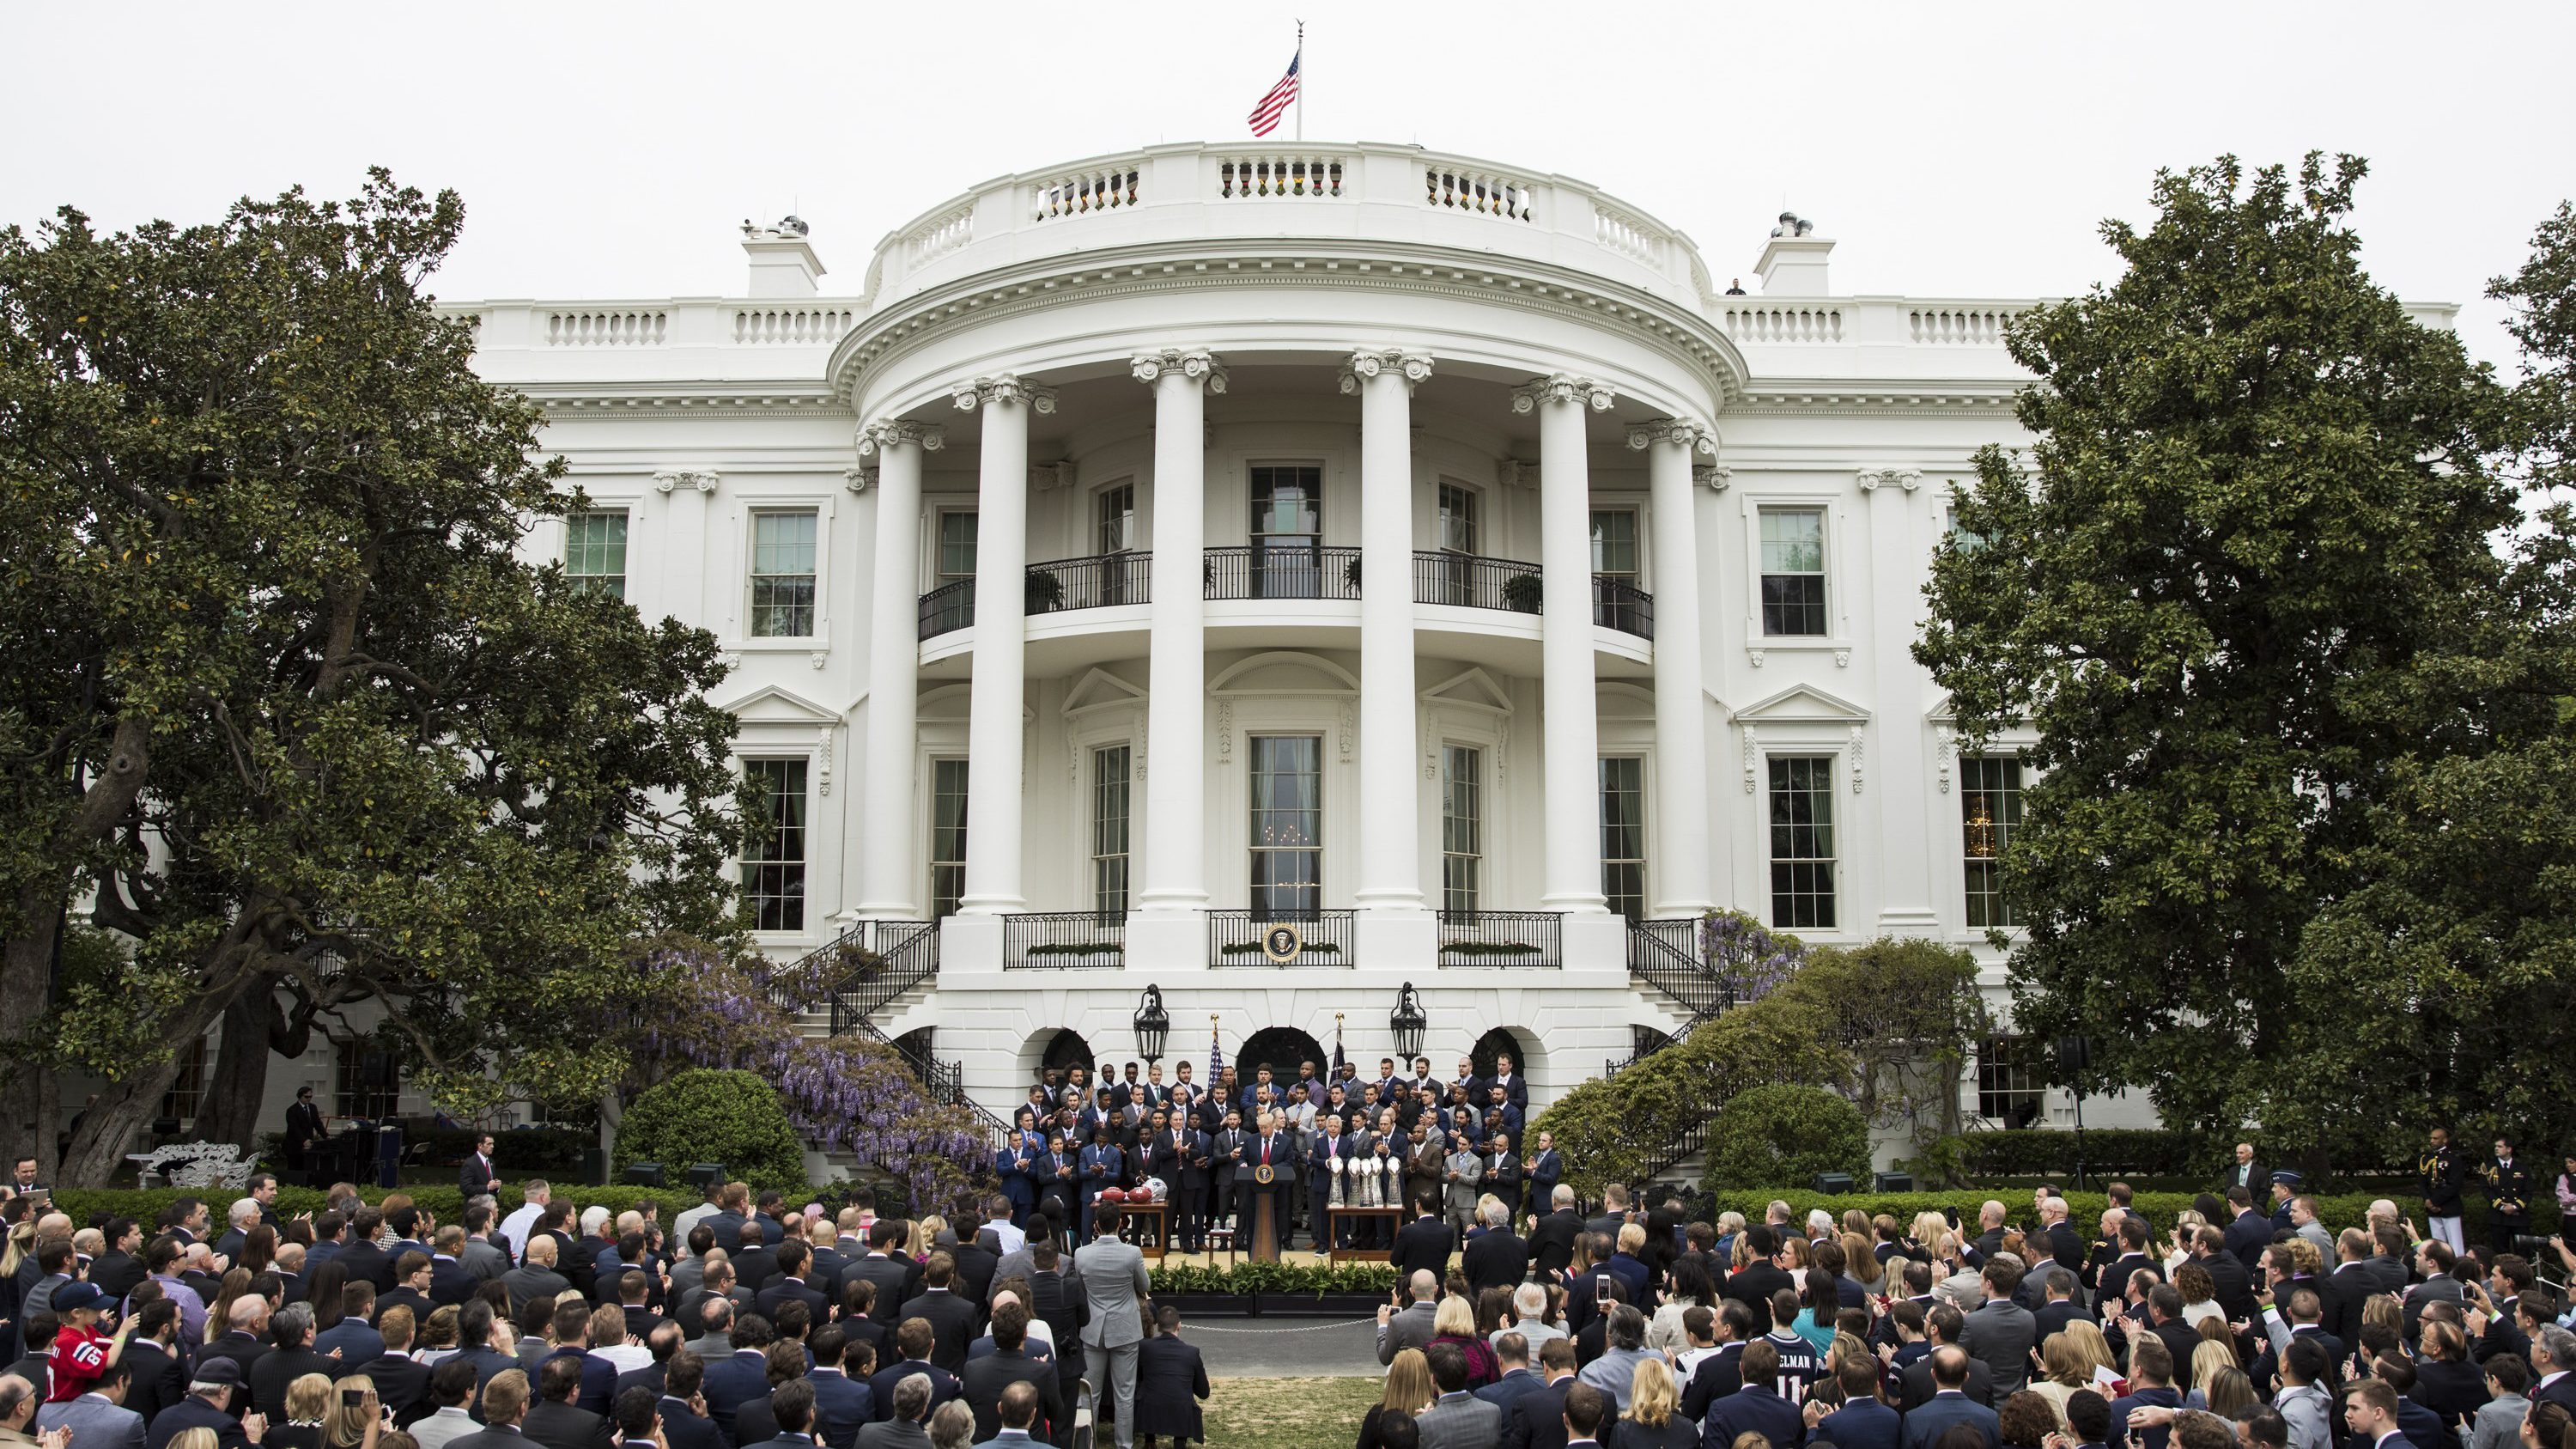 2017 Super Bowl Champions the New England Patriots Visit White House